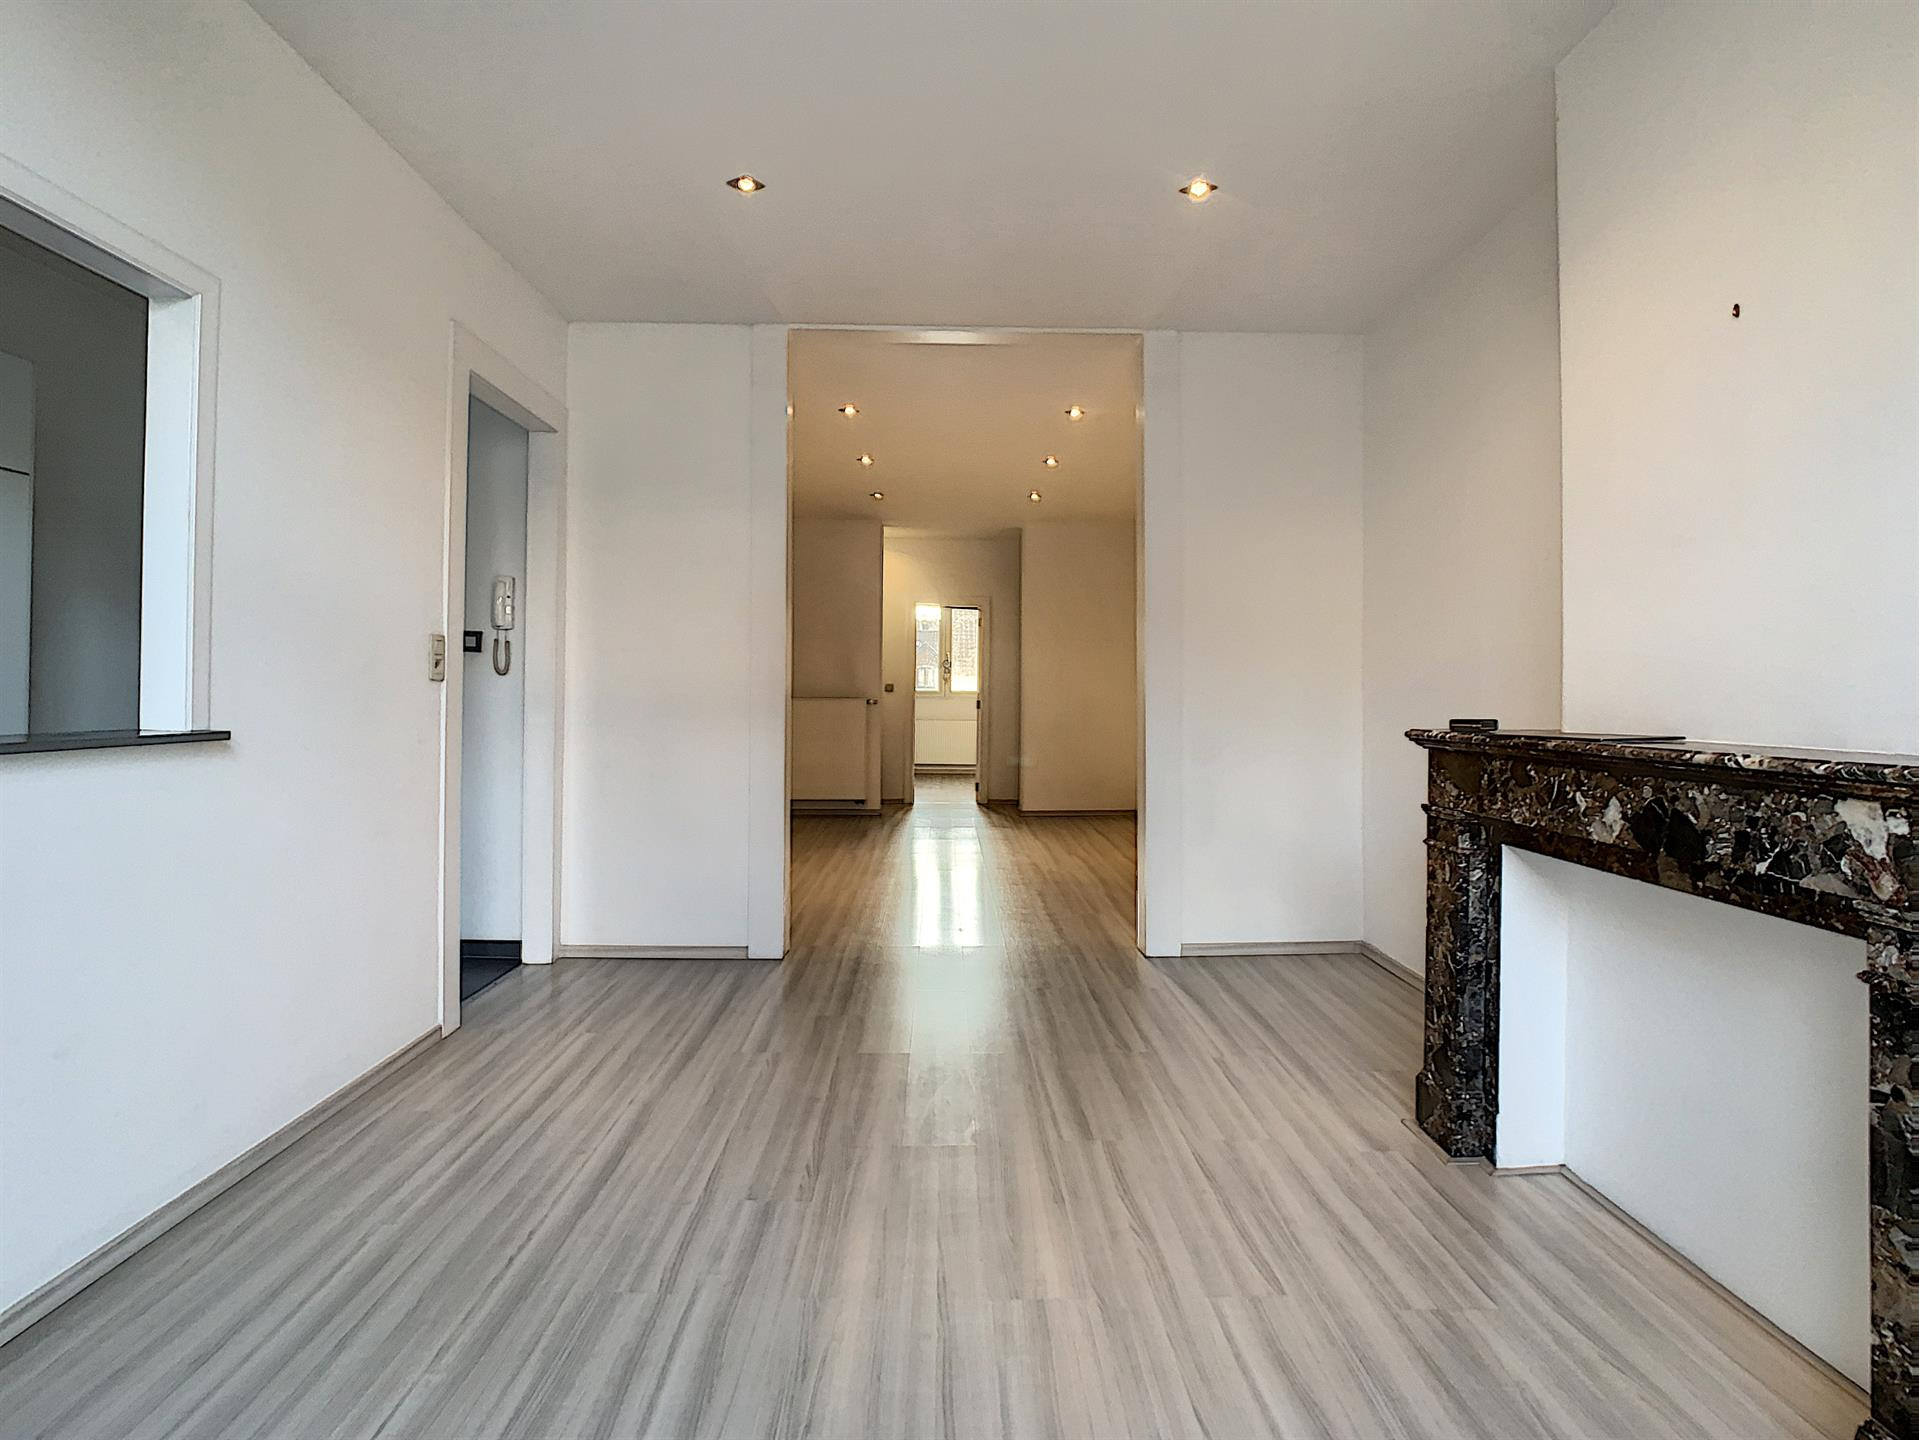 Appartement - Forest - #4242627-0